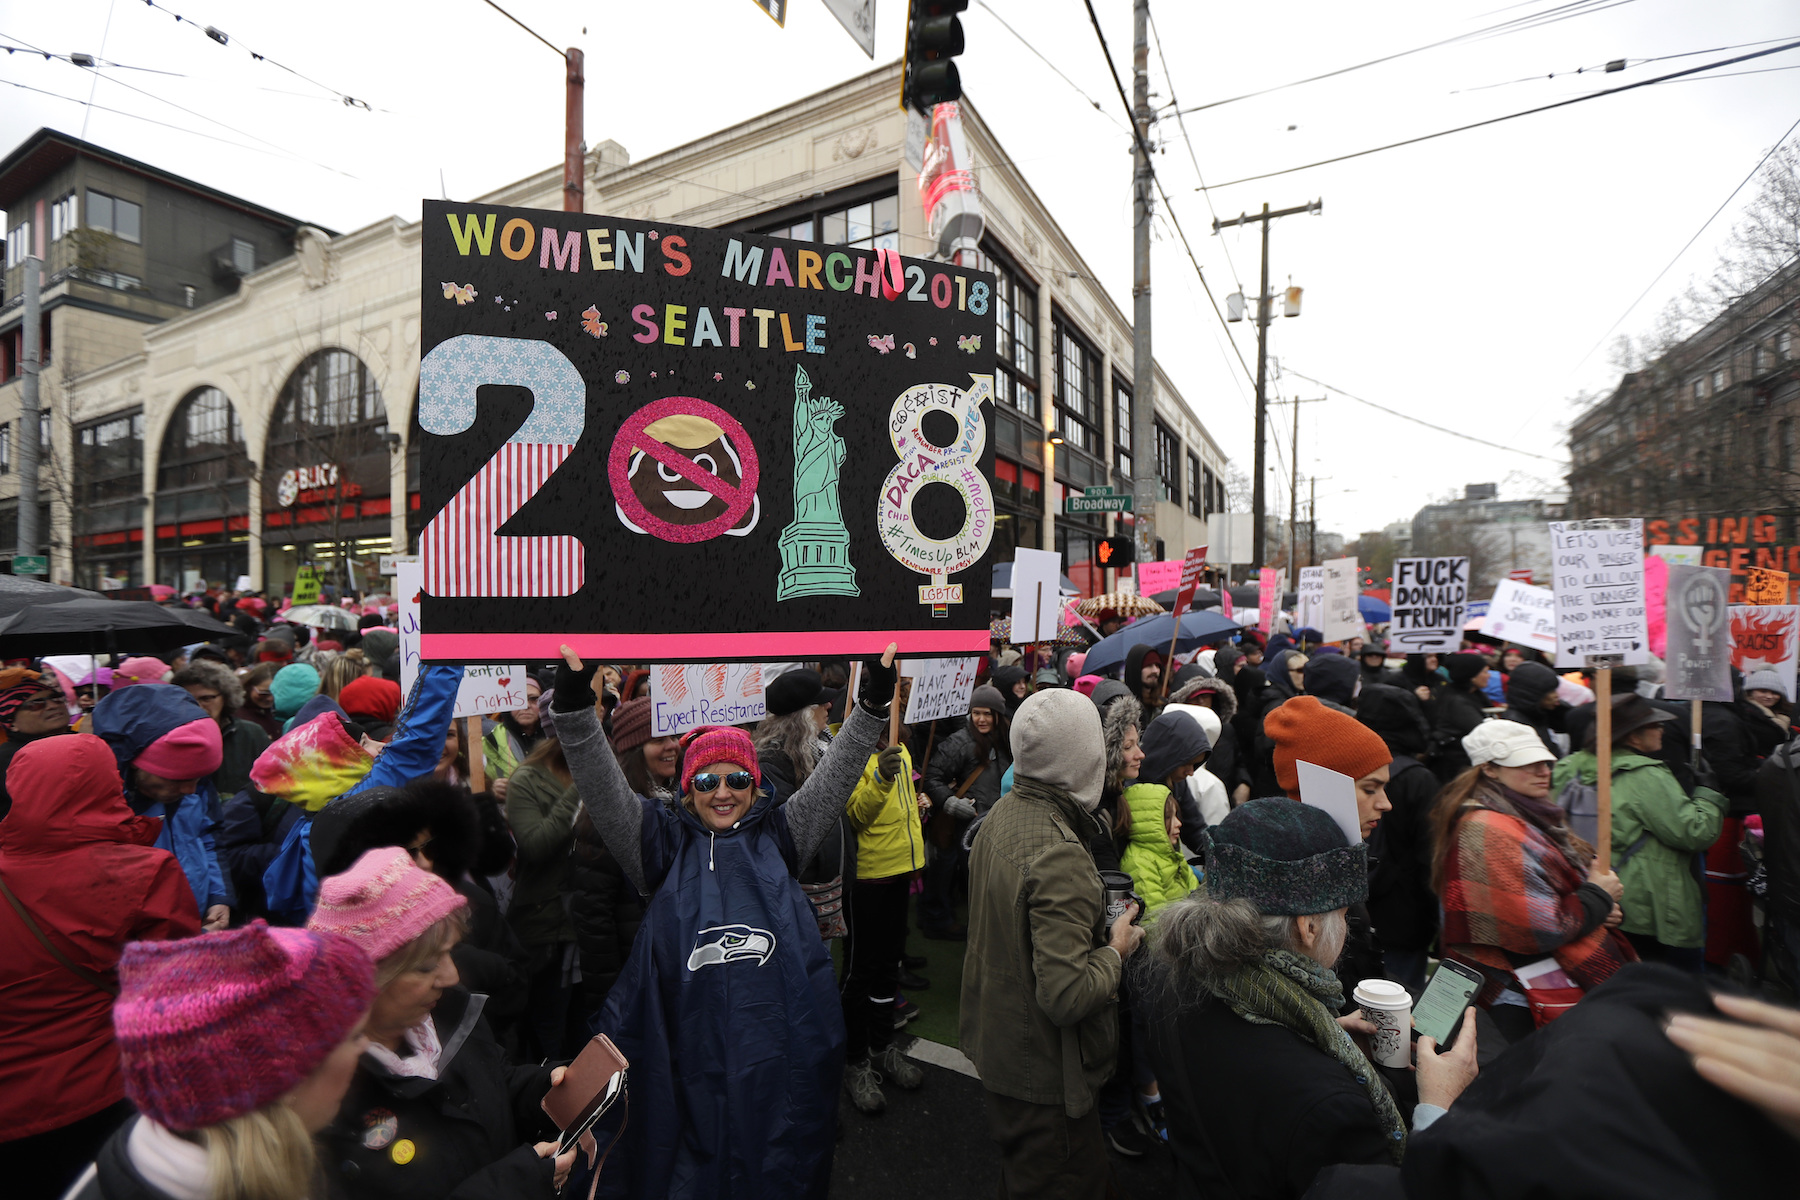 <div class='meta'><div class='origin-logo' data-origin='AP'></div><span class='caption-text' data-credit='AP Photo/Ted S. Warren'>A woman holds as sign as she takes part in a Women's March in Seattle, Saturday, Jan. 20, 2018. The march was one of dozens planned across the U.S. over the weekend.</span></div>